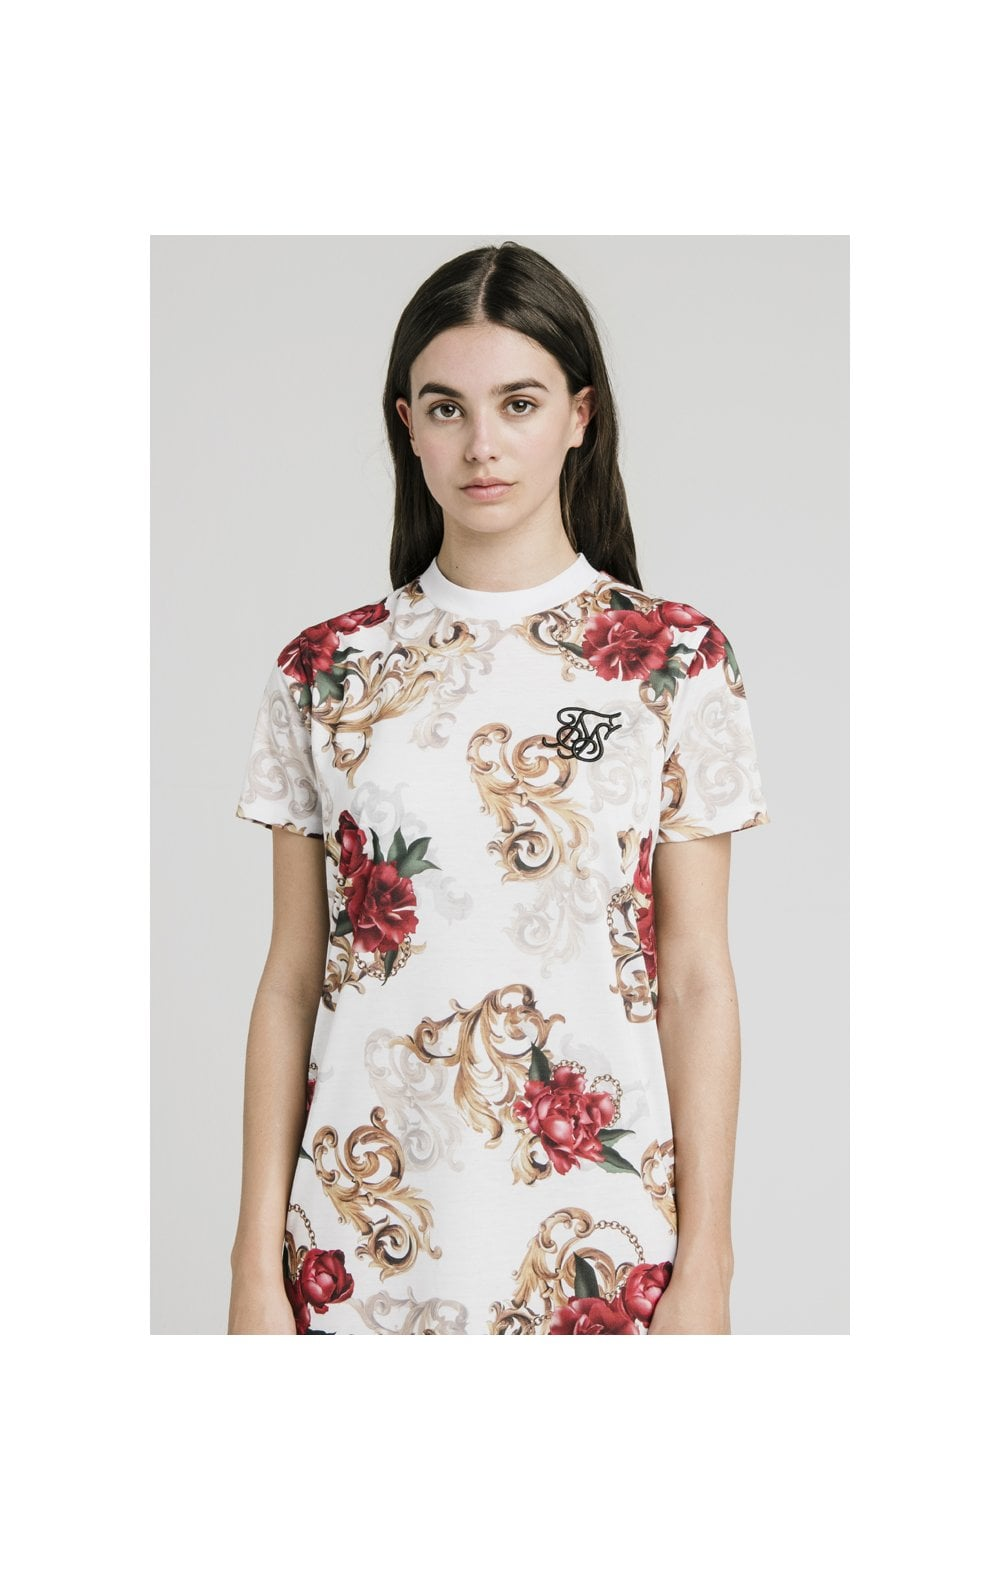 SikSilk T-Shirt Dress - White & Floral Elegance (1)